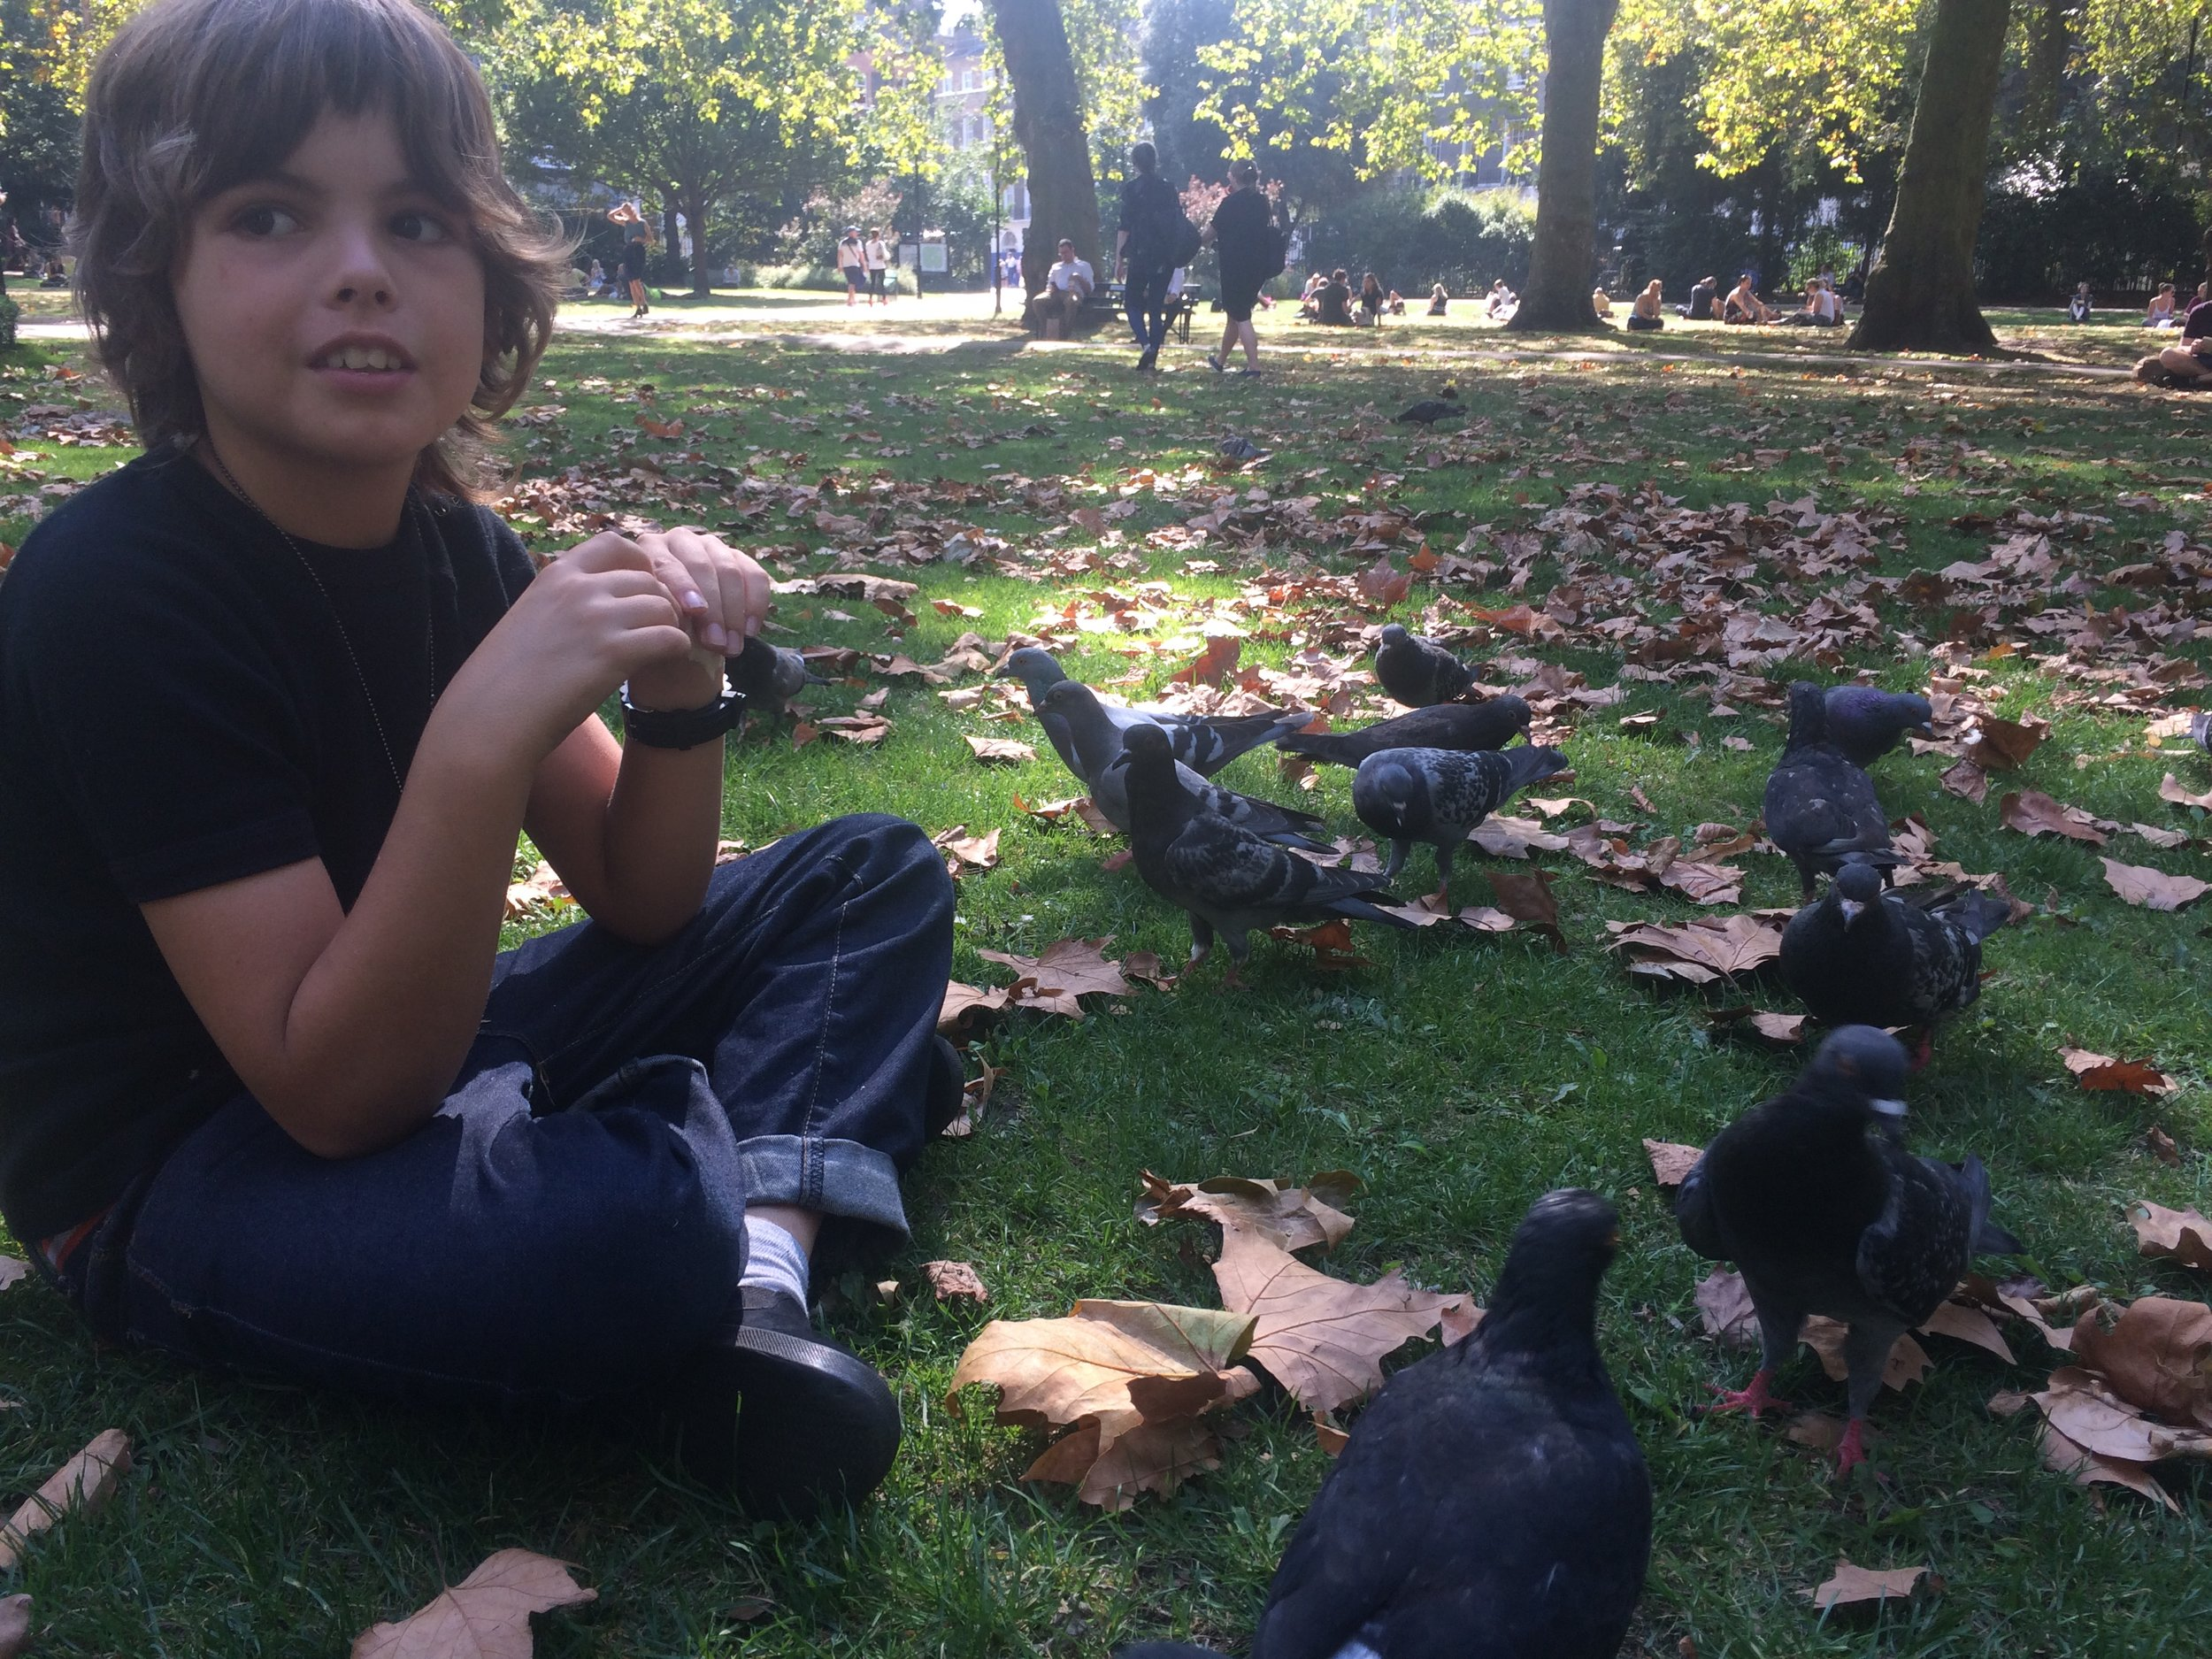 we had a picnics sometimes and i feed some birds and all of the birds come to me.